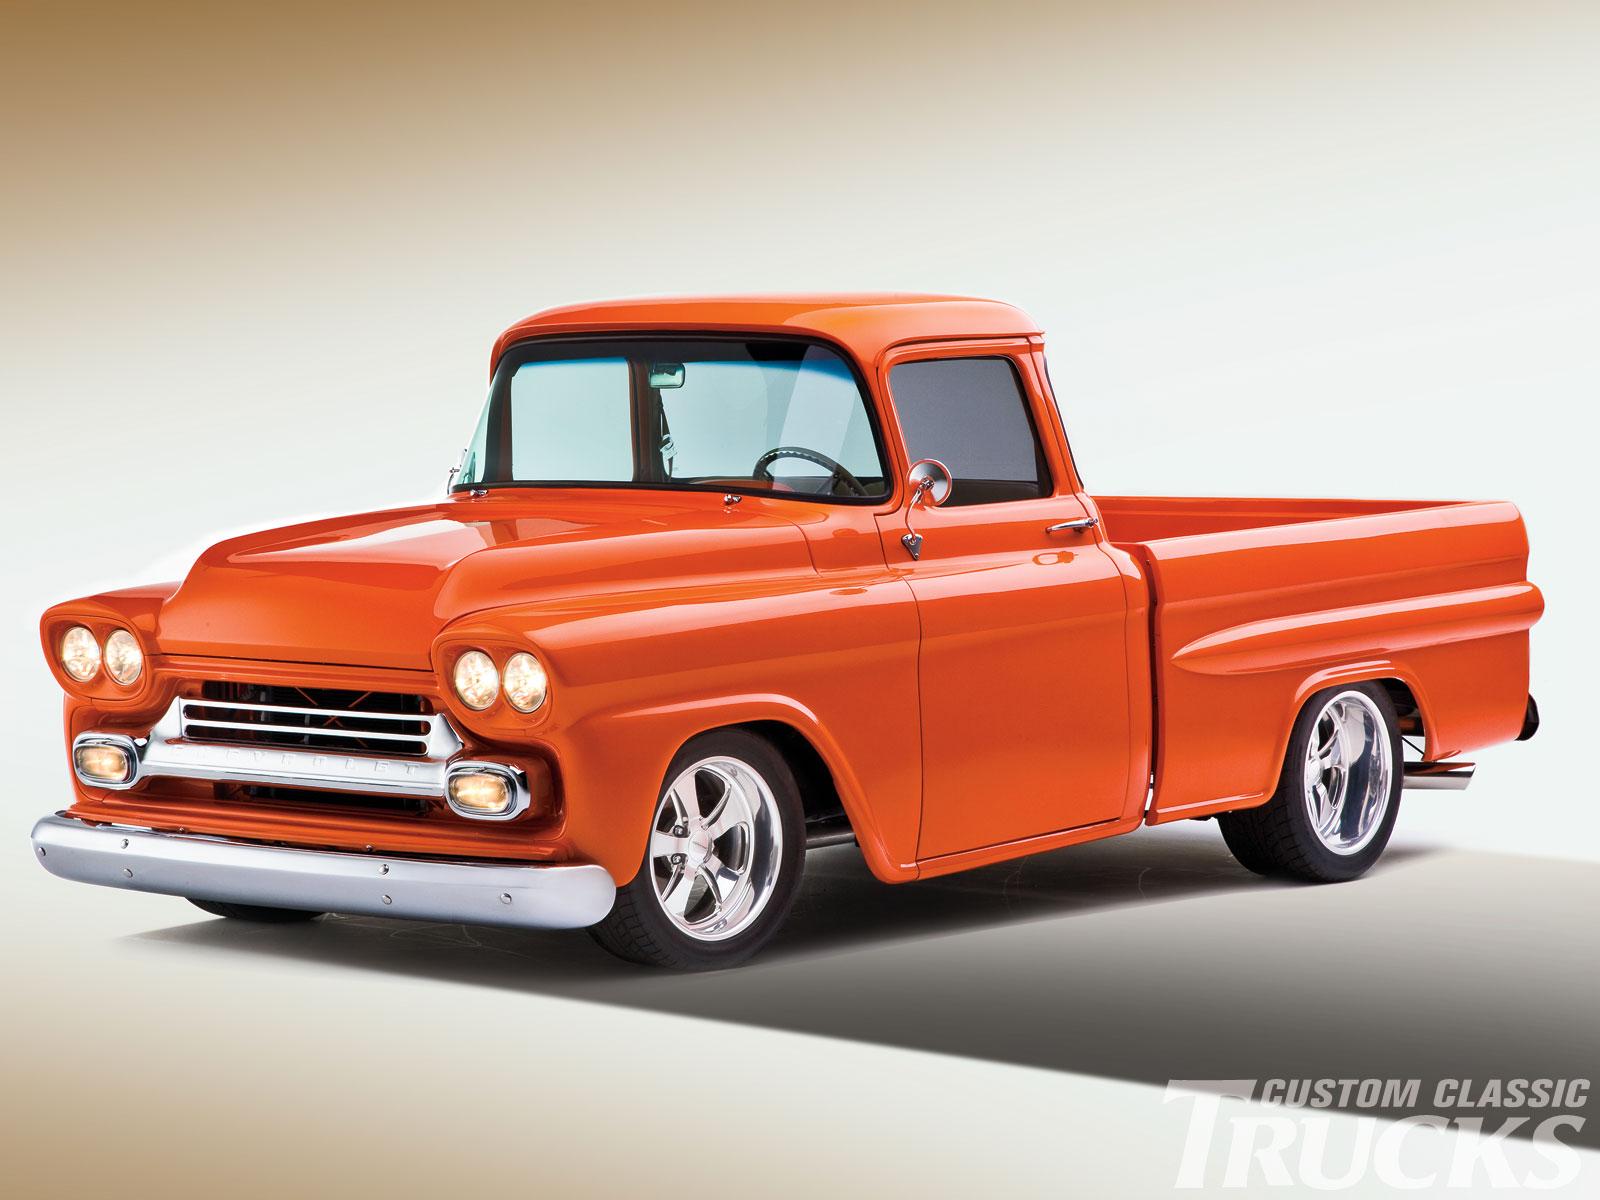 Classic Truck Pc Wallpaper Downloads 9280   Amazing 1600x1200